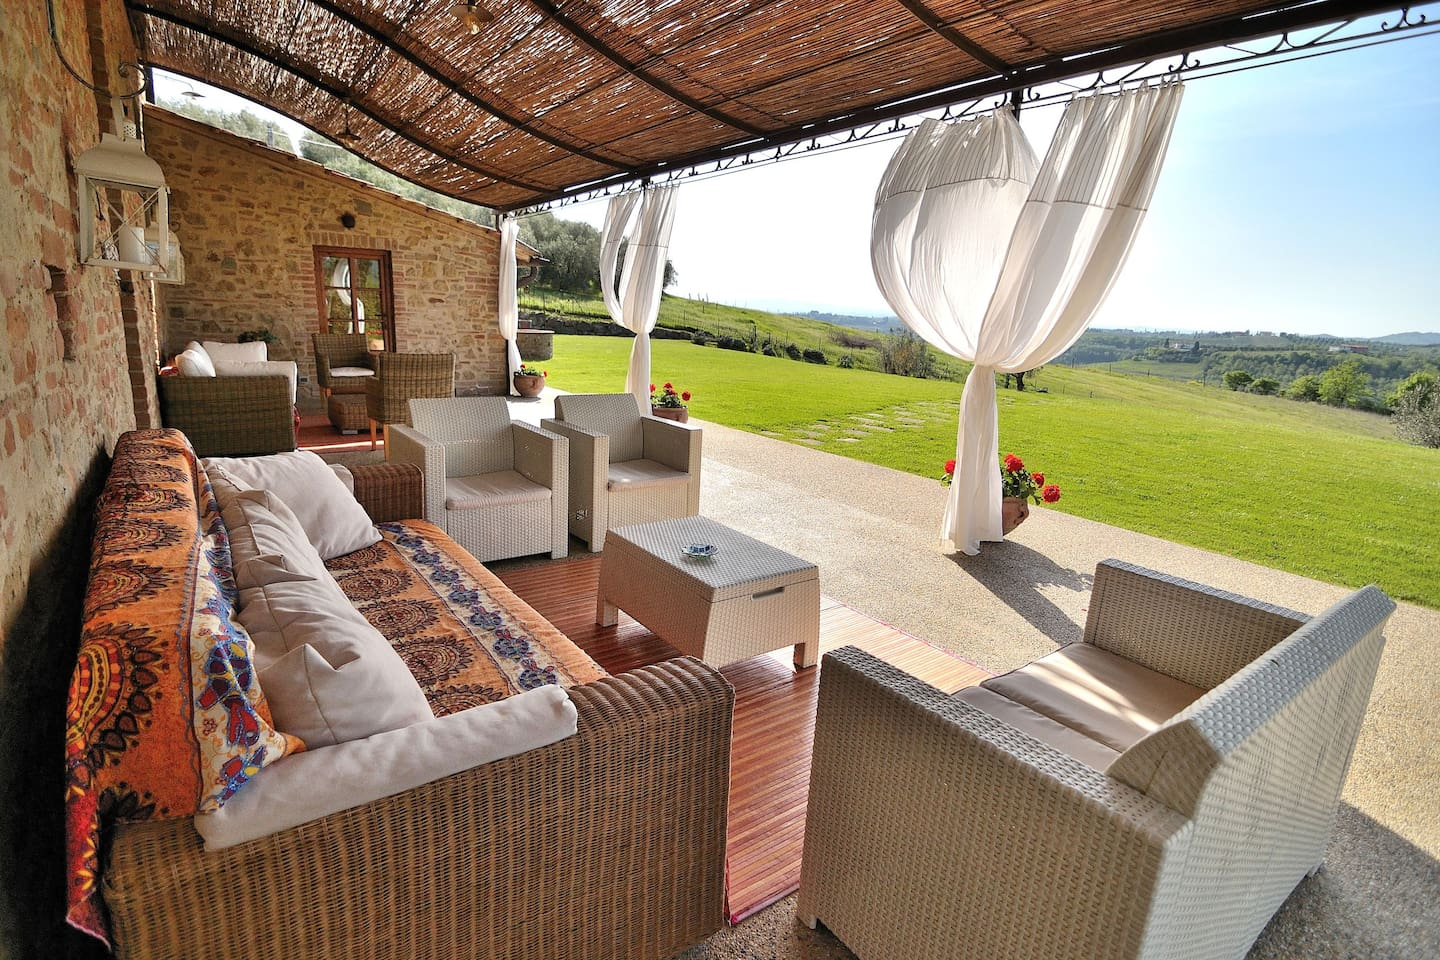 Panoramic Veranda with WaterproofRoof ideal to relax! The Villa is setting in a strategic location btw Florence and Siena, just 6 Km from Certaldo (Where you'll find also a train station) and few Km from San Gimignano!! 3 Km from Barberino Val d'Elsa